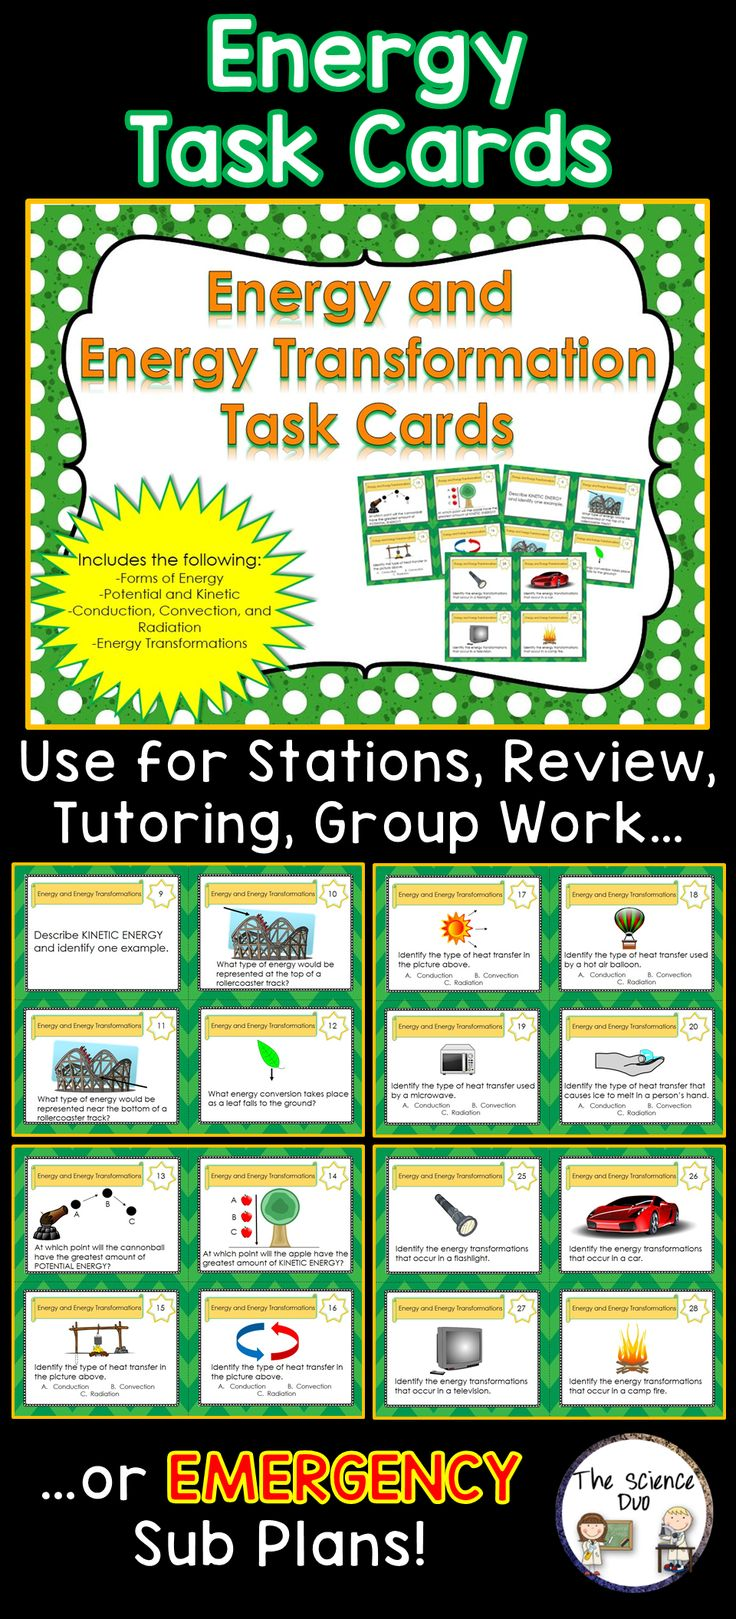 Energy and Energy Transformation Task Cards. This interactive Energy task card set contains 8 pages of cards (4 questions per page) for a total of 32 different questions. These cards are great for review, rotations, partner work, or independent study.